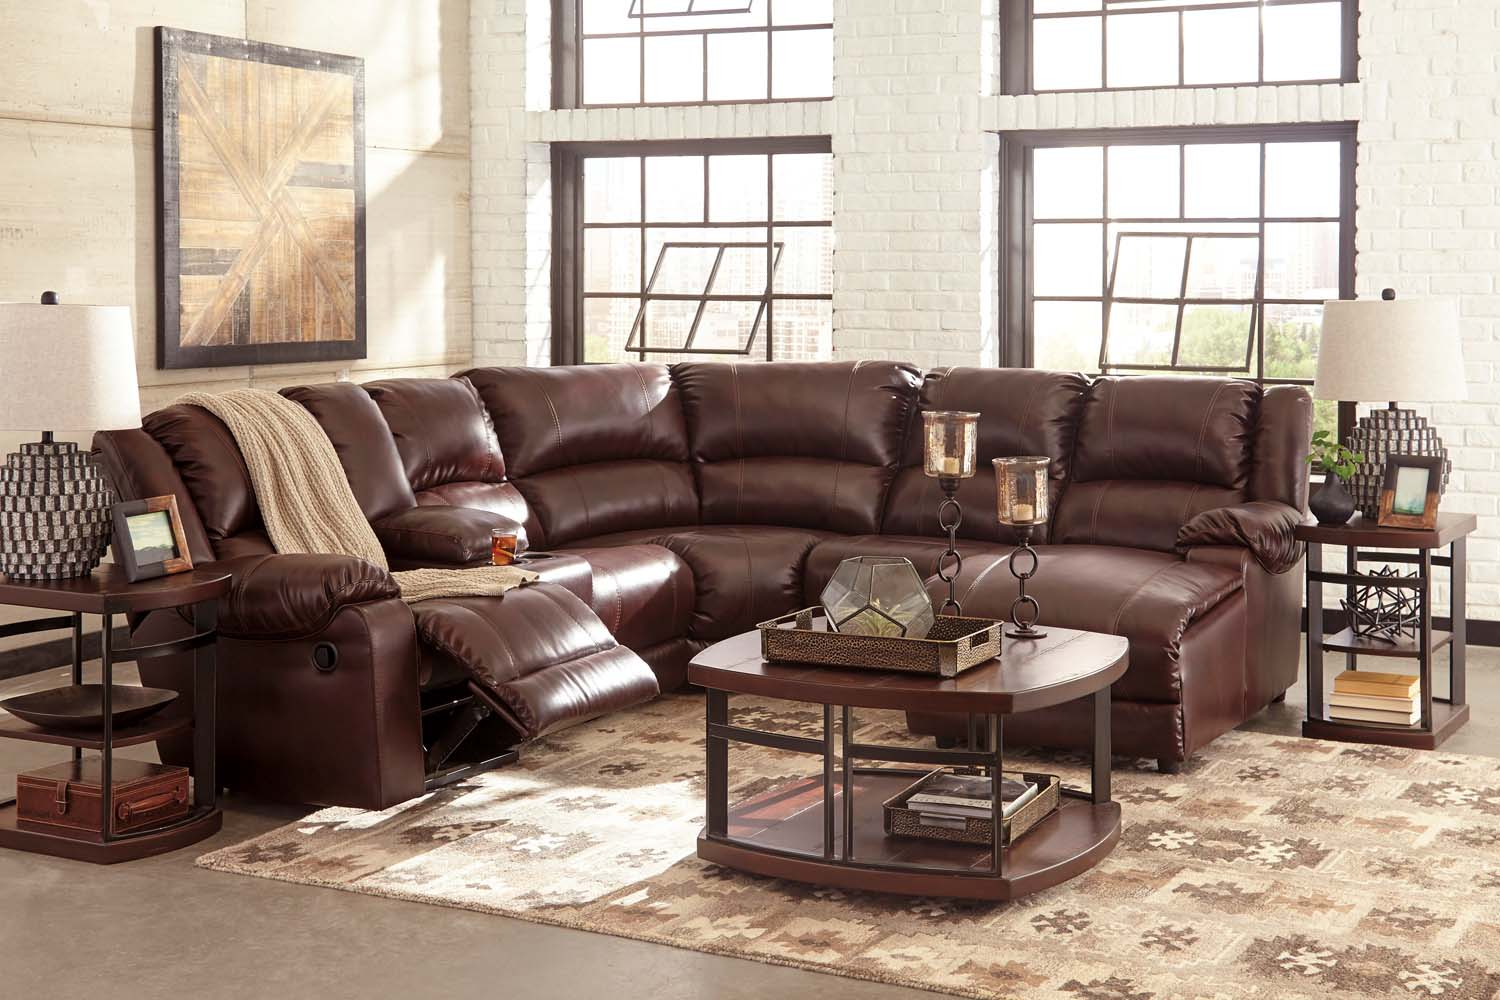 MacGrath DuraBlend® - Mahogany 5 Piece Sectional : durablend sectional - Sectionals, Sofas & Couches